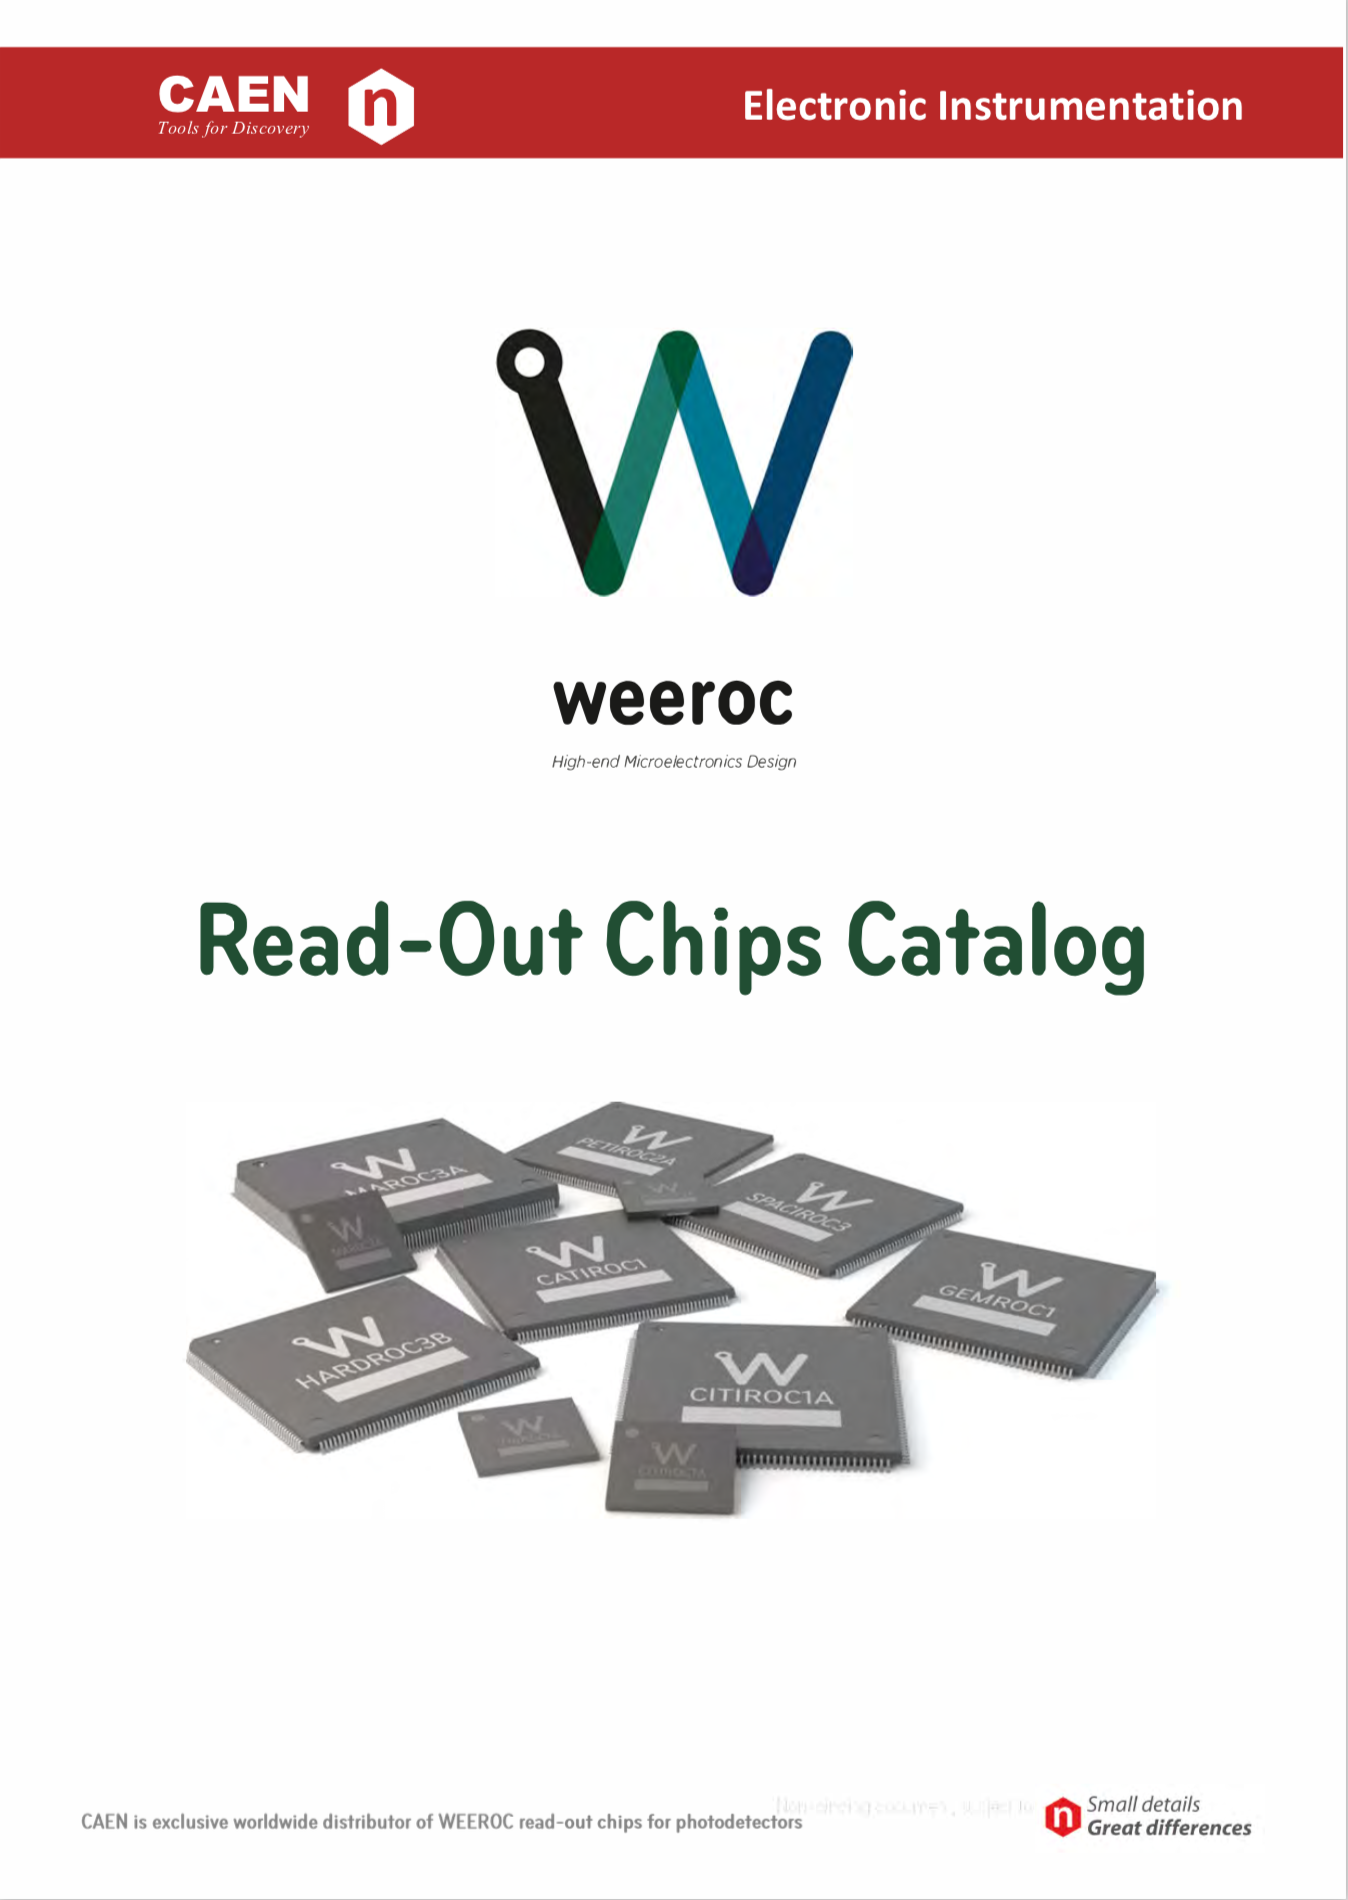 CAEN WEEROC Read-Out Chips Catalog 2018